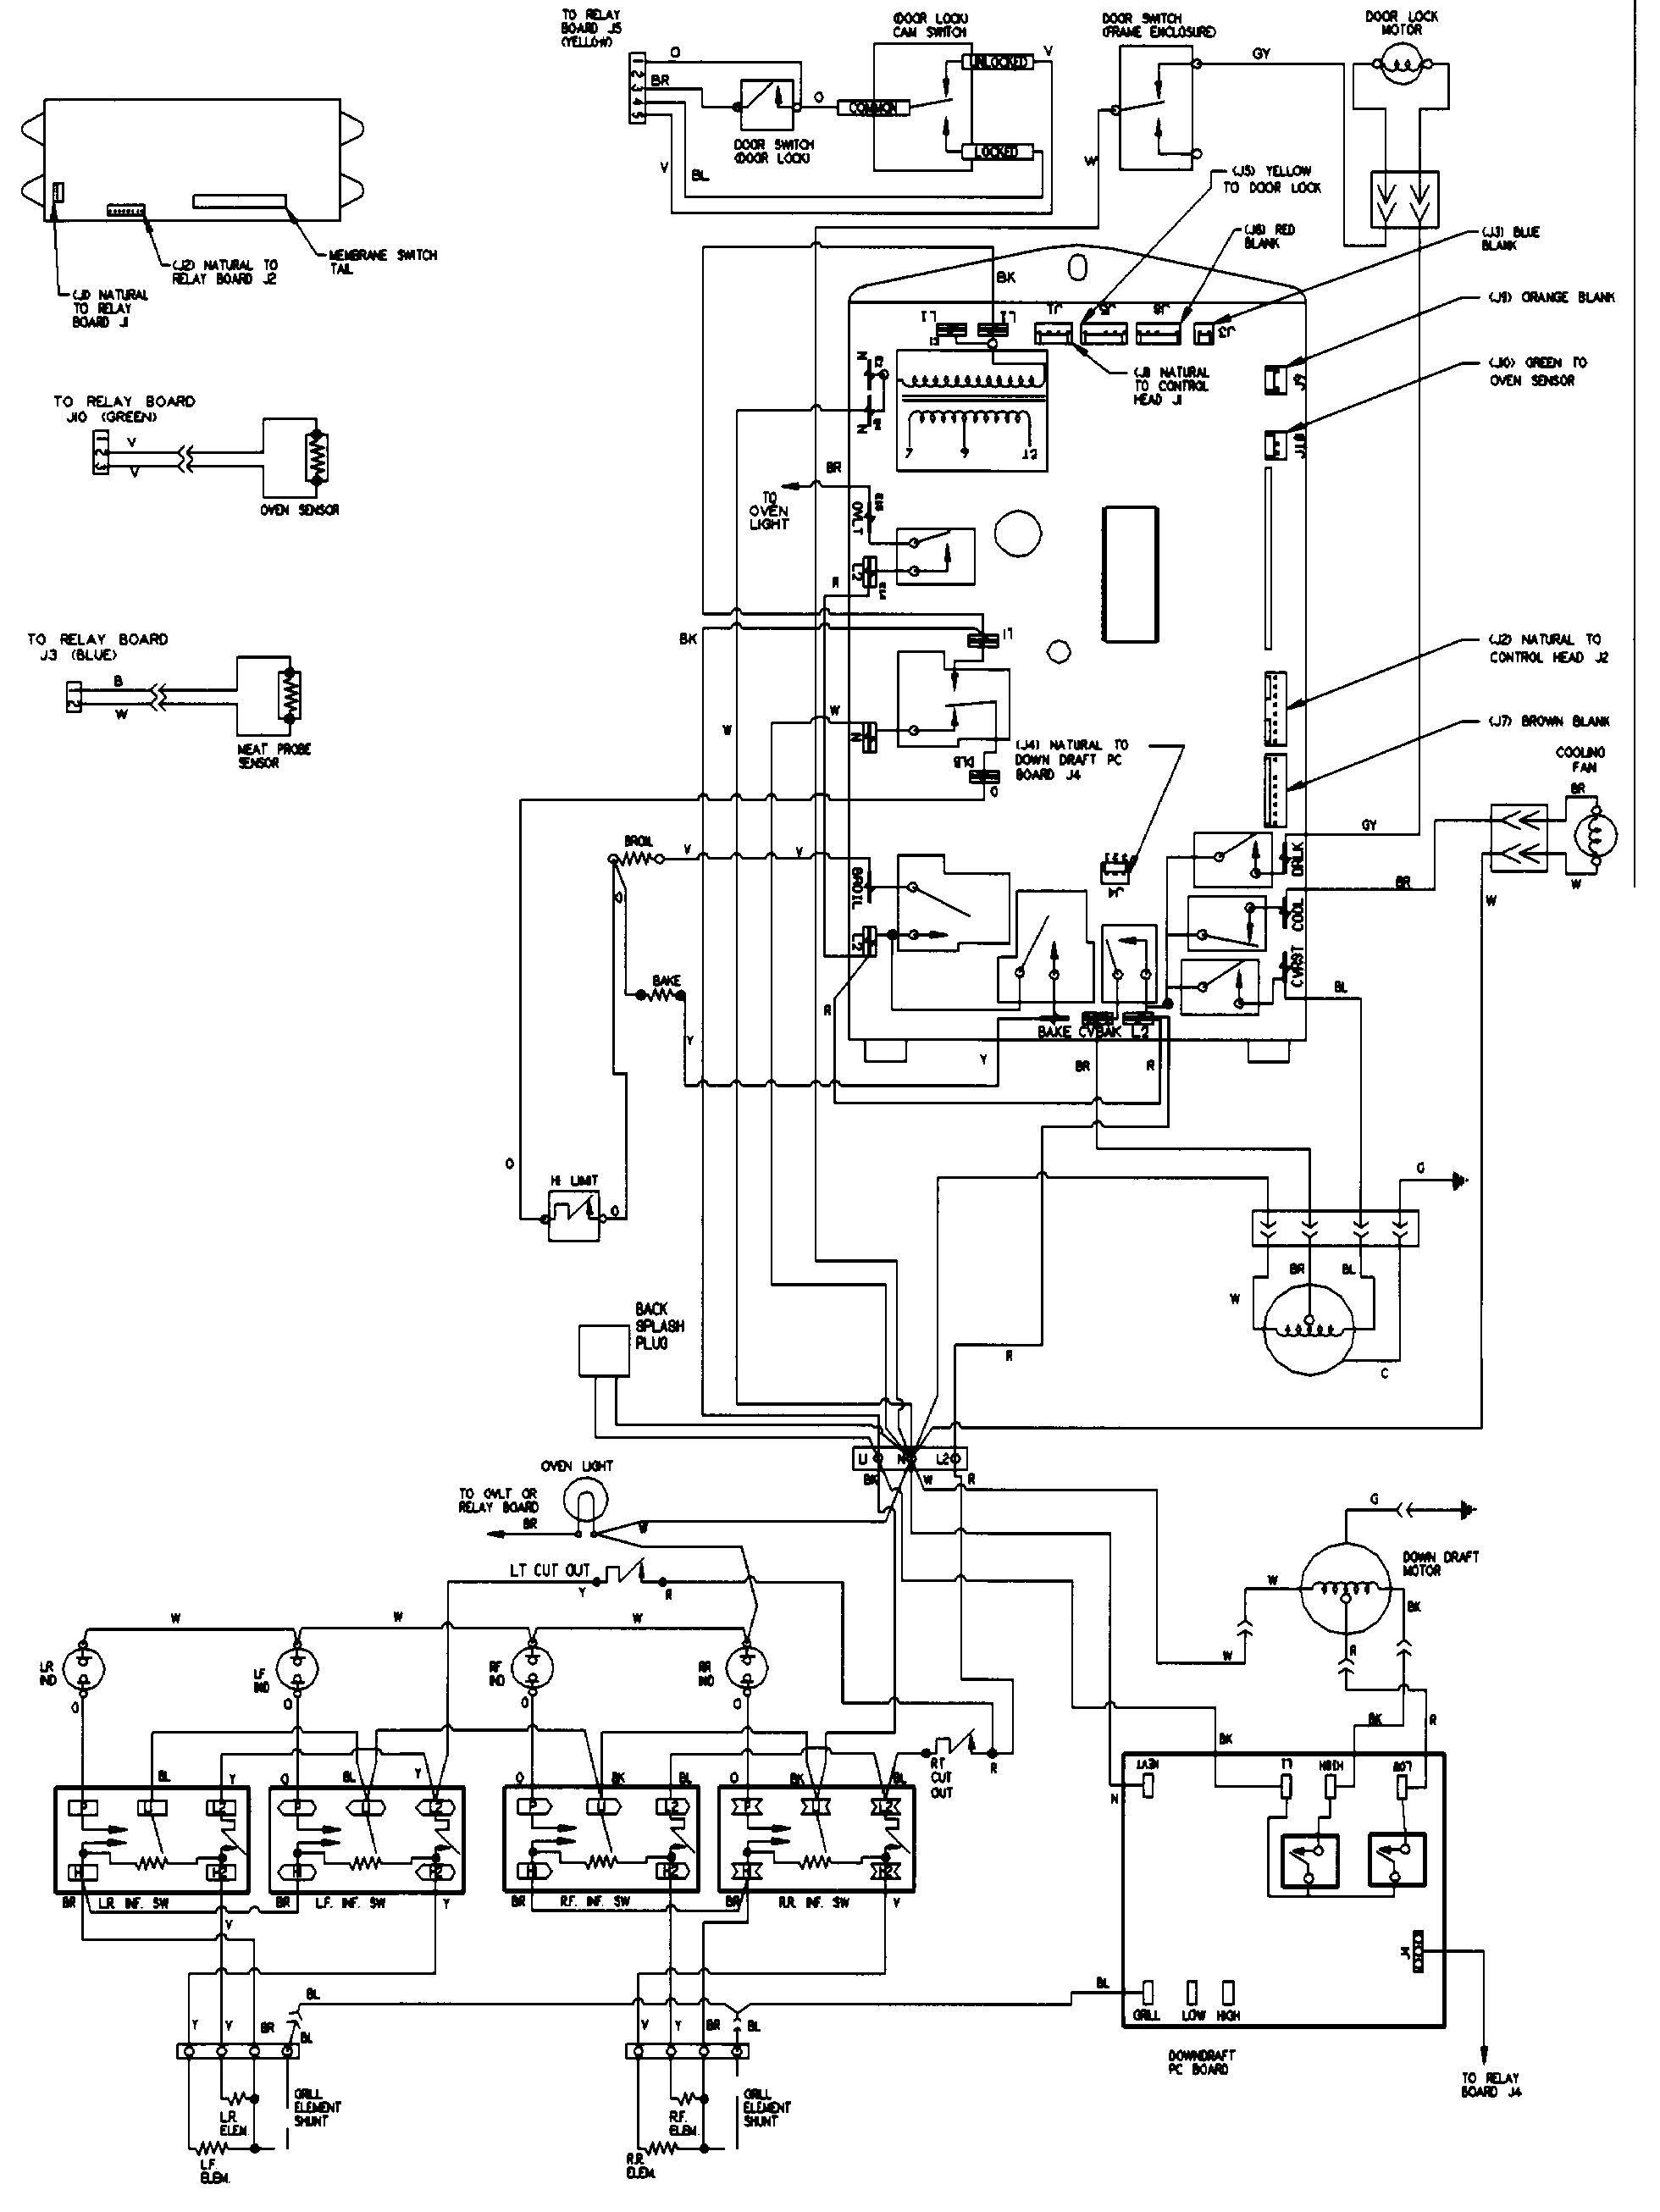 wiring diagram for defy gemini oven